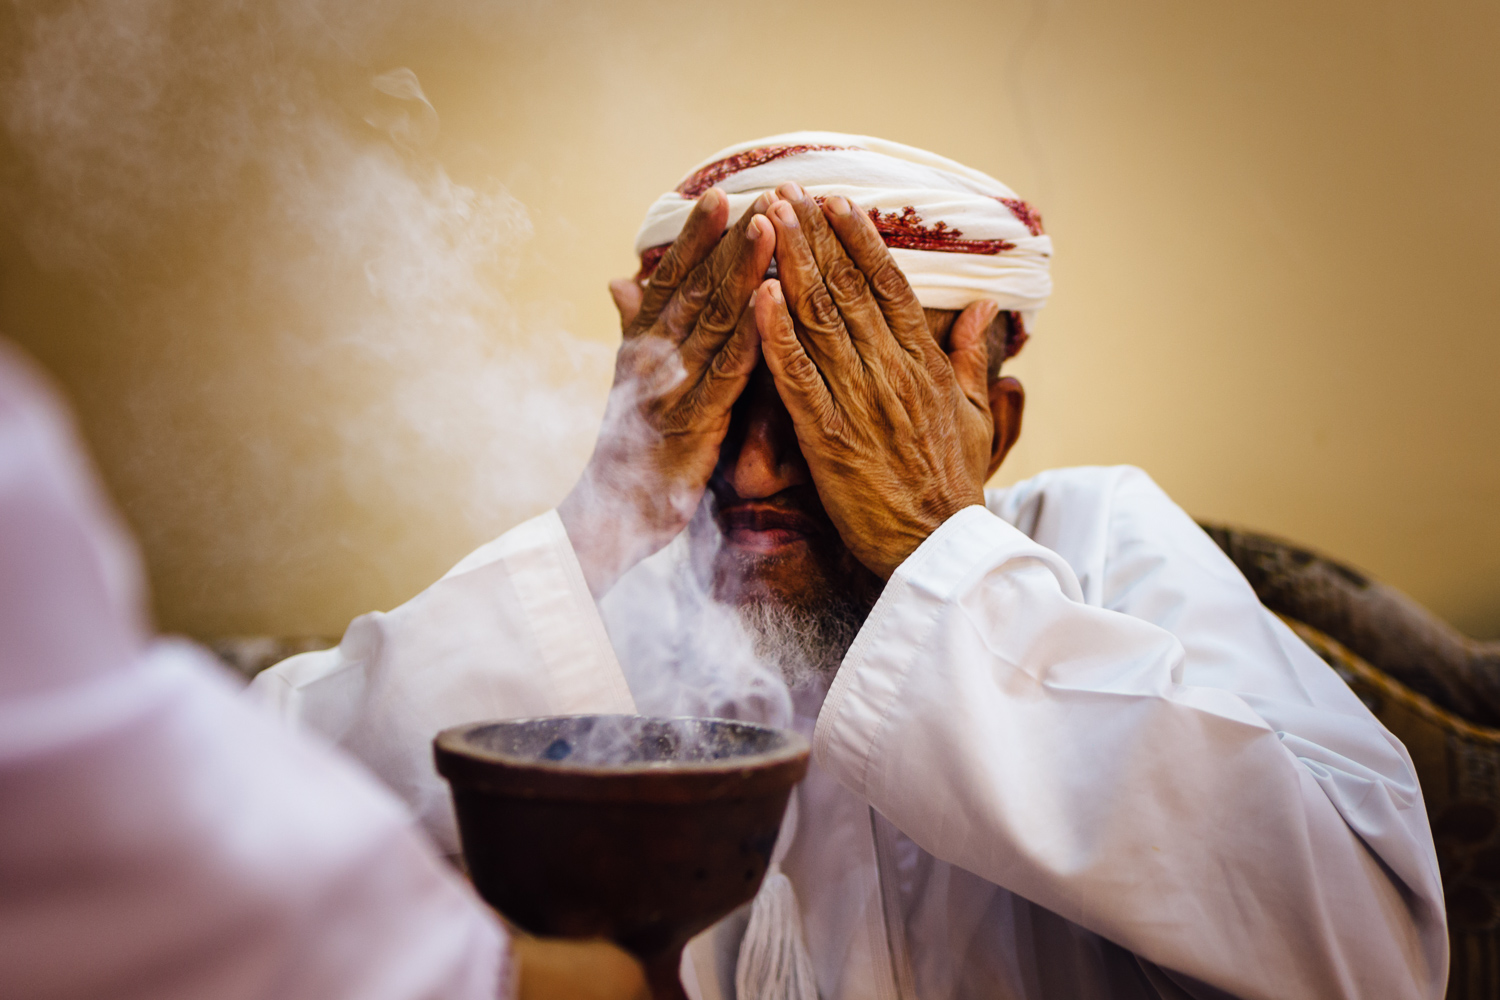 Man-OldMan-Incense-Frankincense-Tradition-Village-Oman-Daniel-Durazo-Photography-Durazophotography